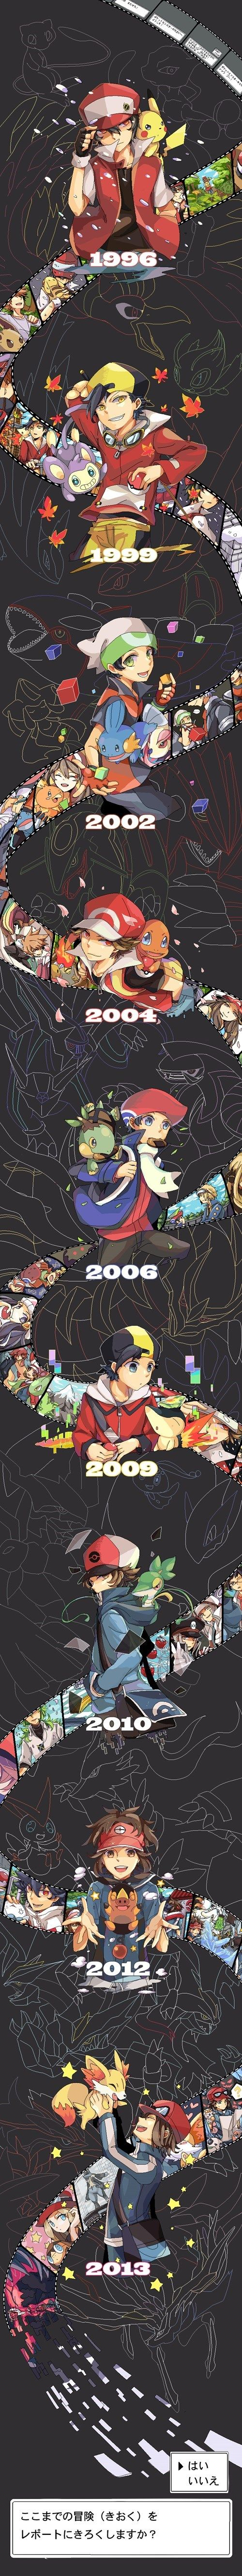 All of the amazing years of Pokemon! Here's to another great year and hopefully many more!!!